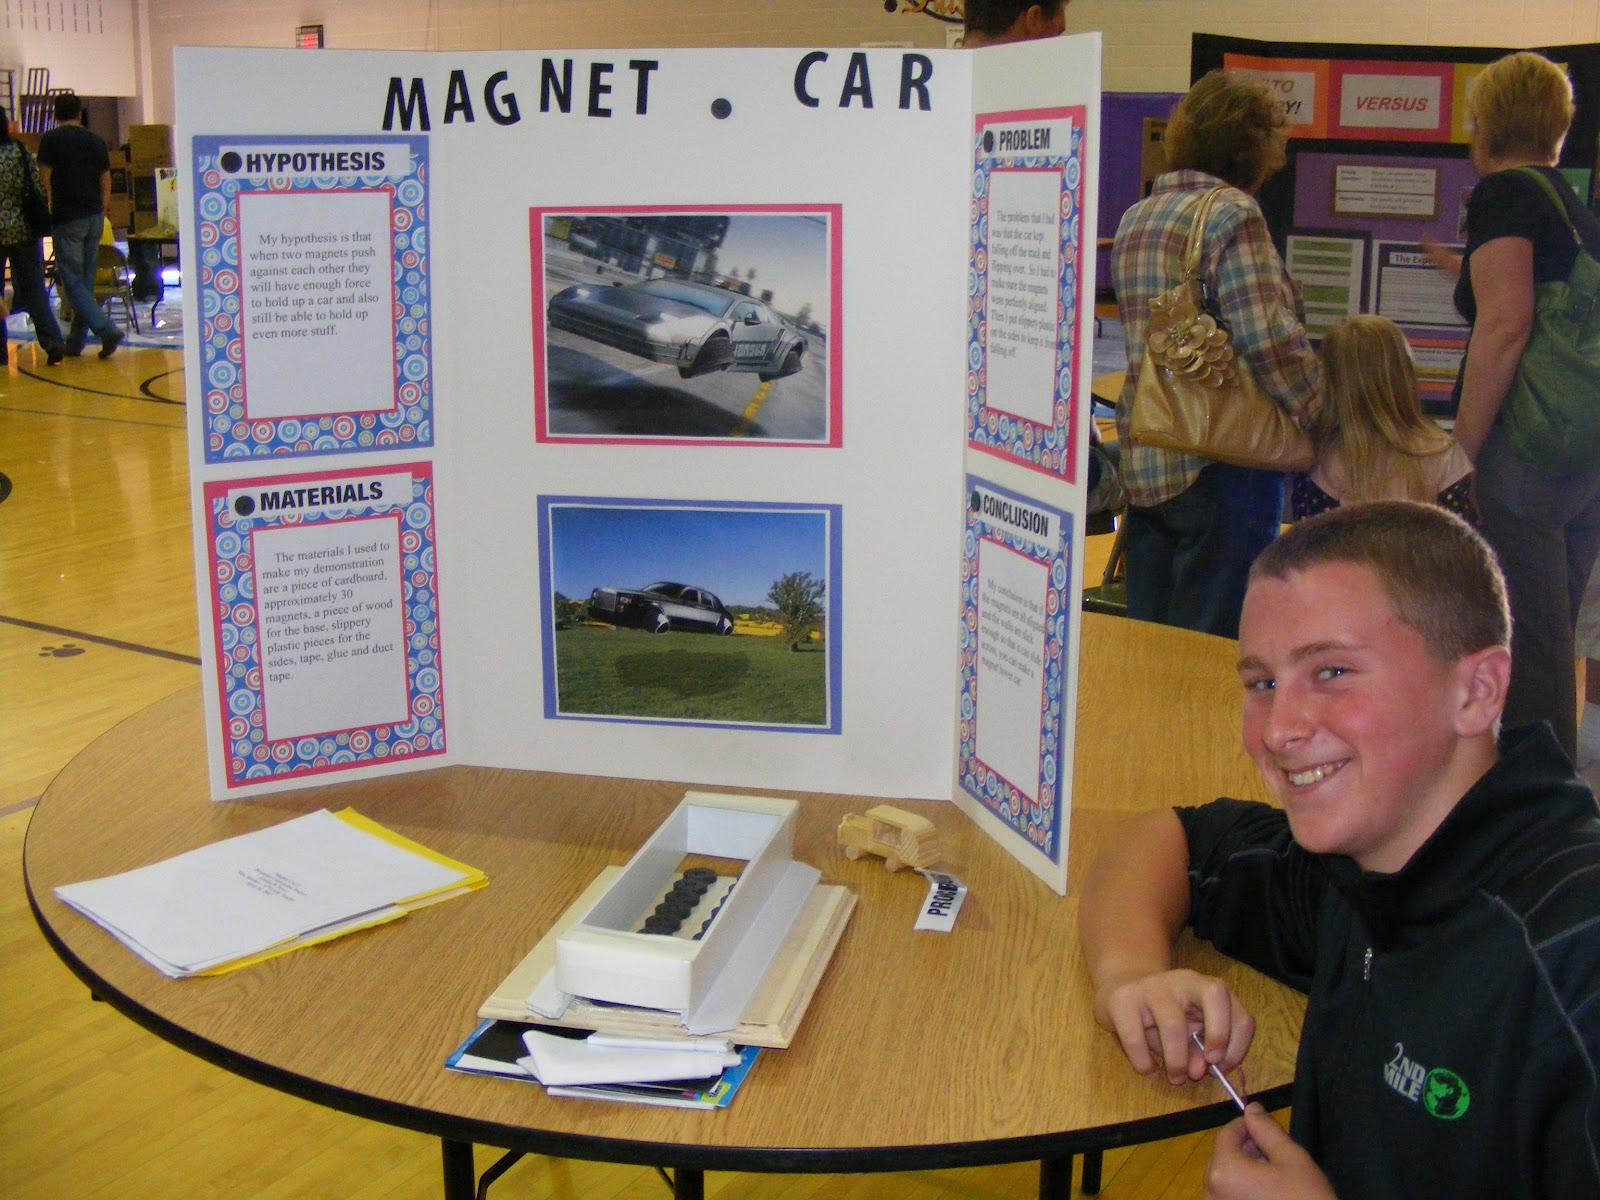 science fair projects for 6th grade How are 5th grade science fair projects characterized and how would they be different from 6th grade projects.